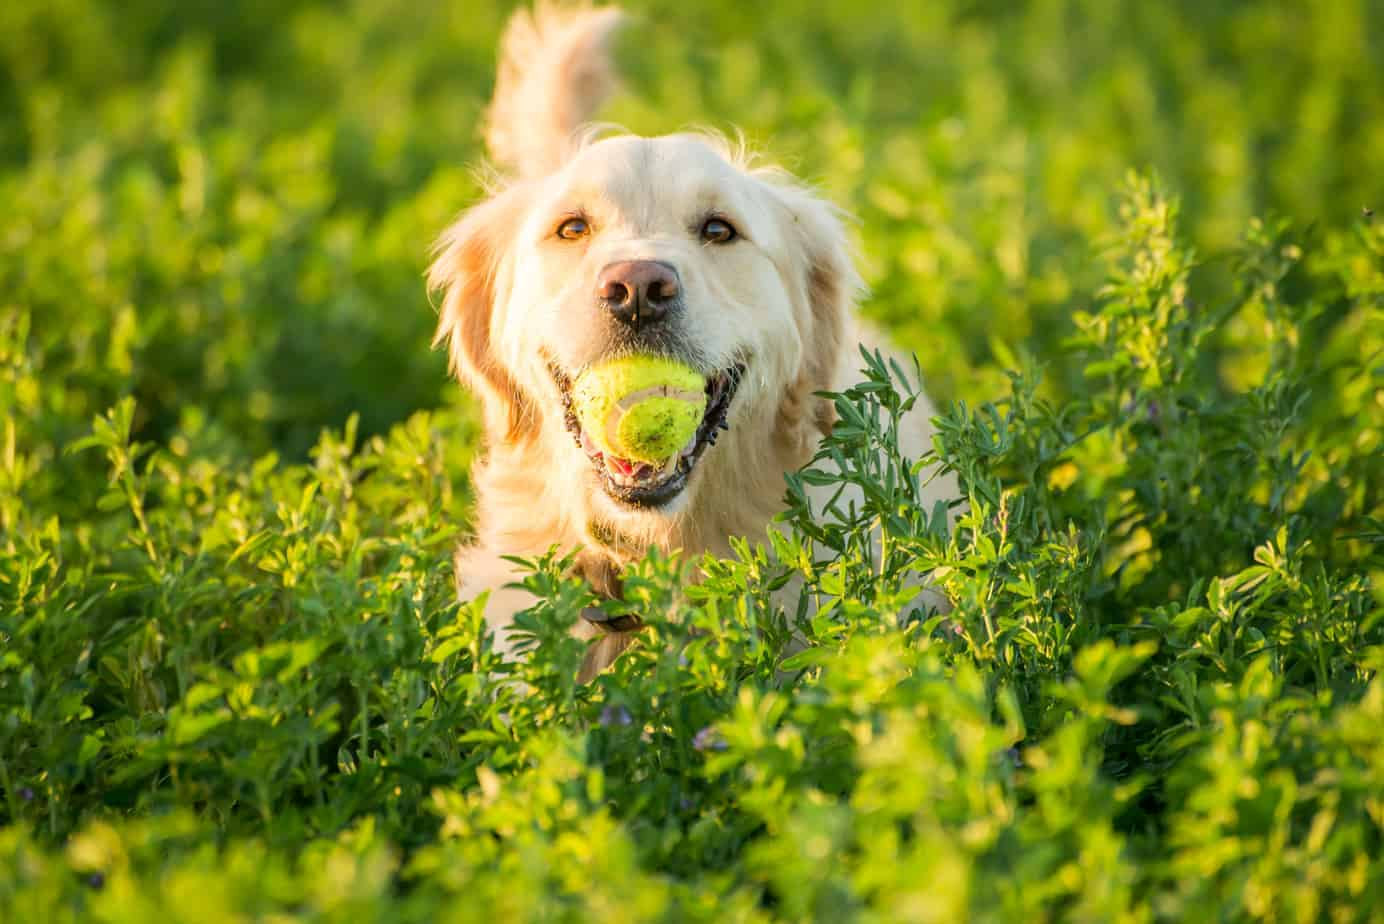 golden retriever with tennis ball in tall grass. Dogs eat grass when they are bored.